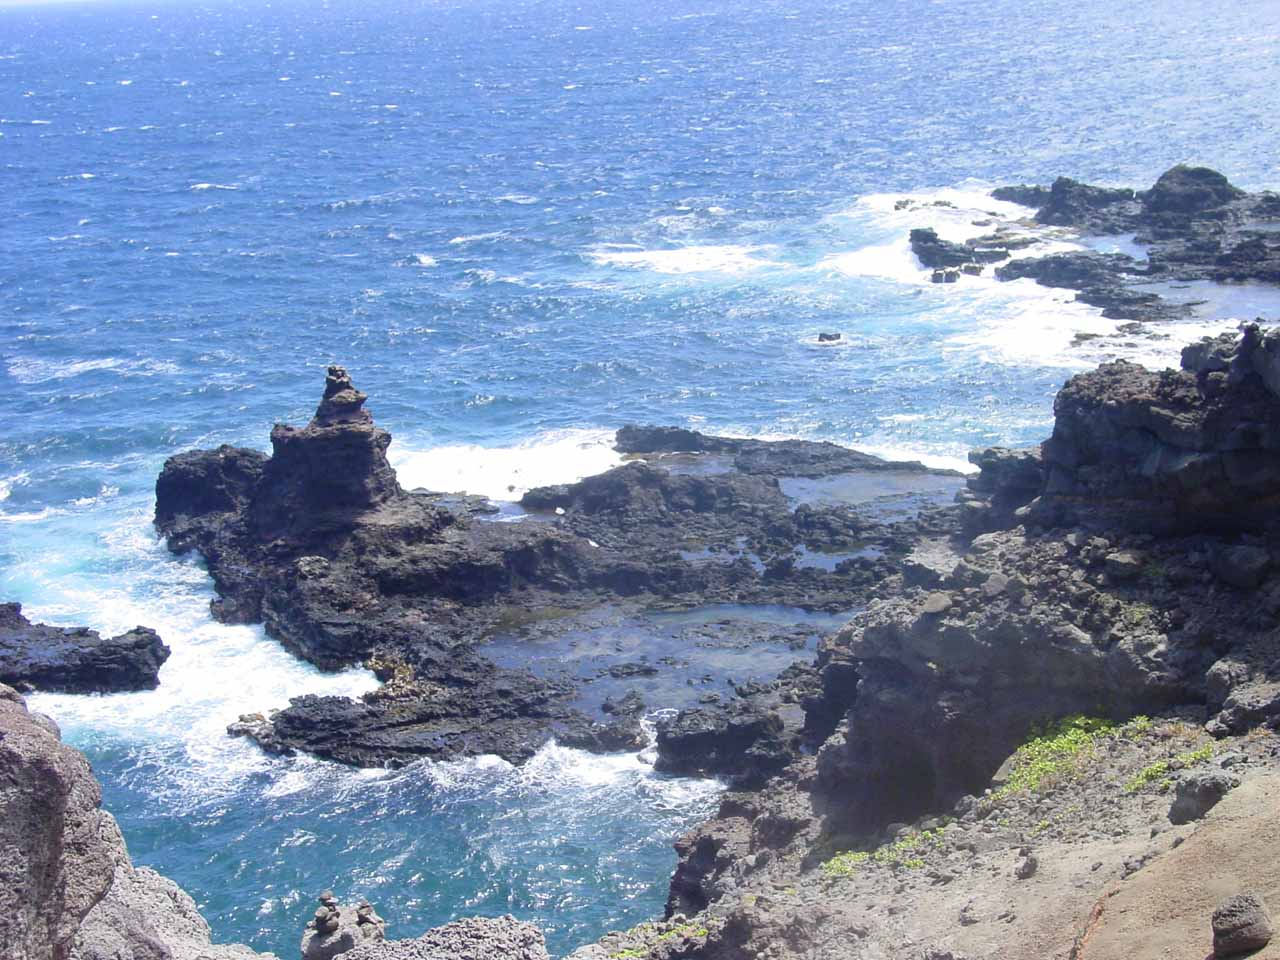 While driving around West Maui, I recalled we were also looking for the Olivine Pools, though I wasn't sure if was the general area where we would've found it